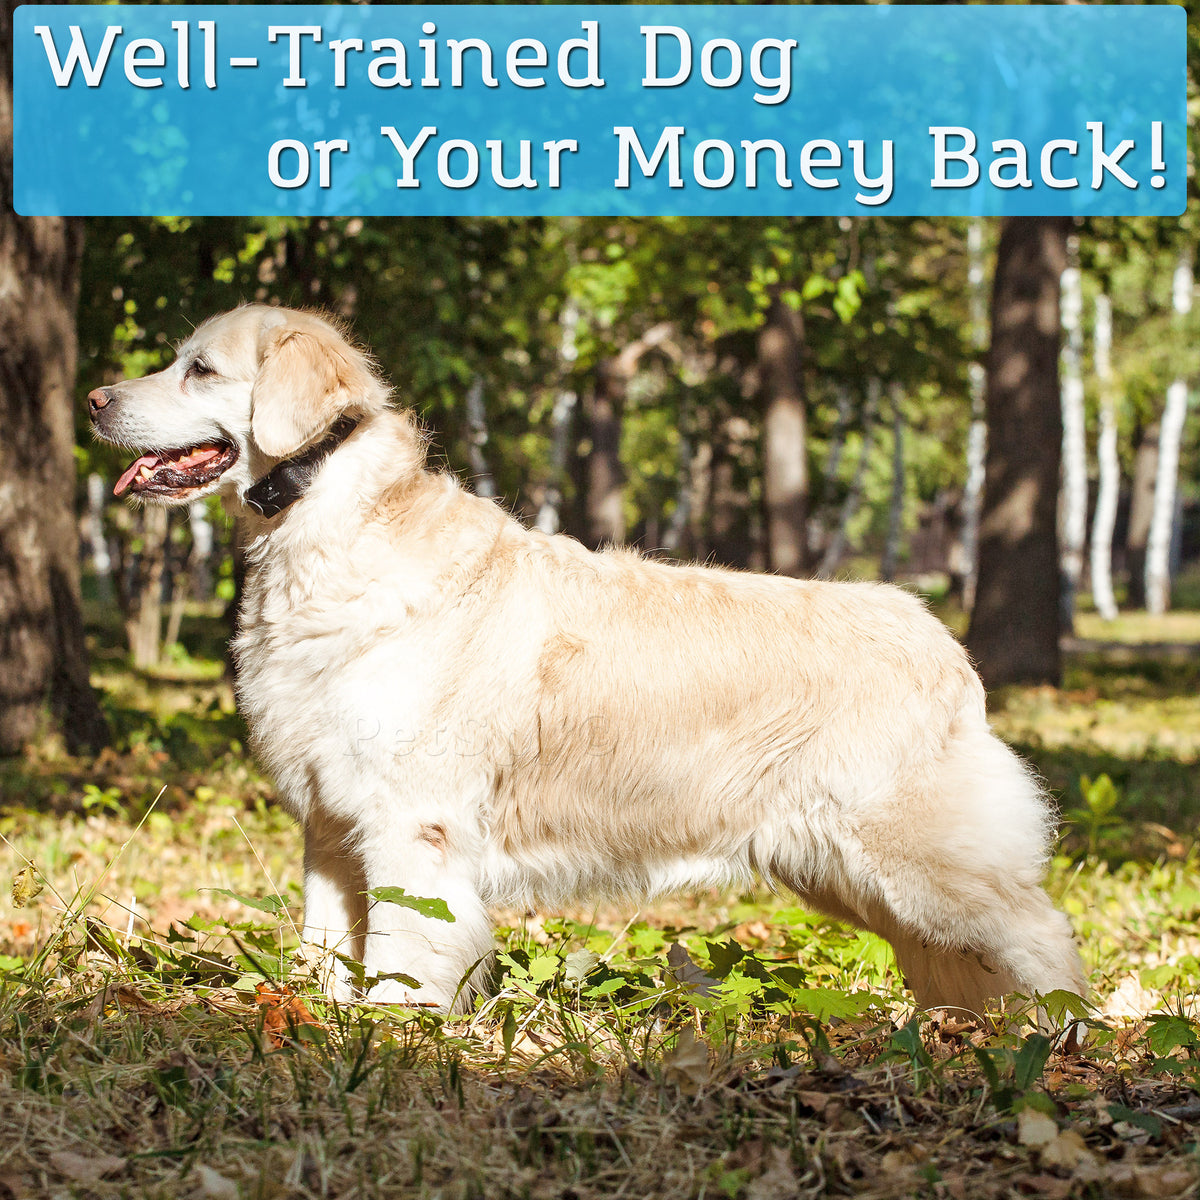 Golden retriever with dog training collar. Well trained dog or your money back!